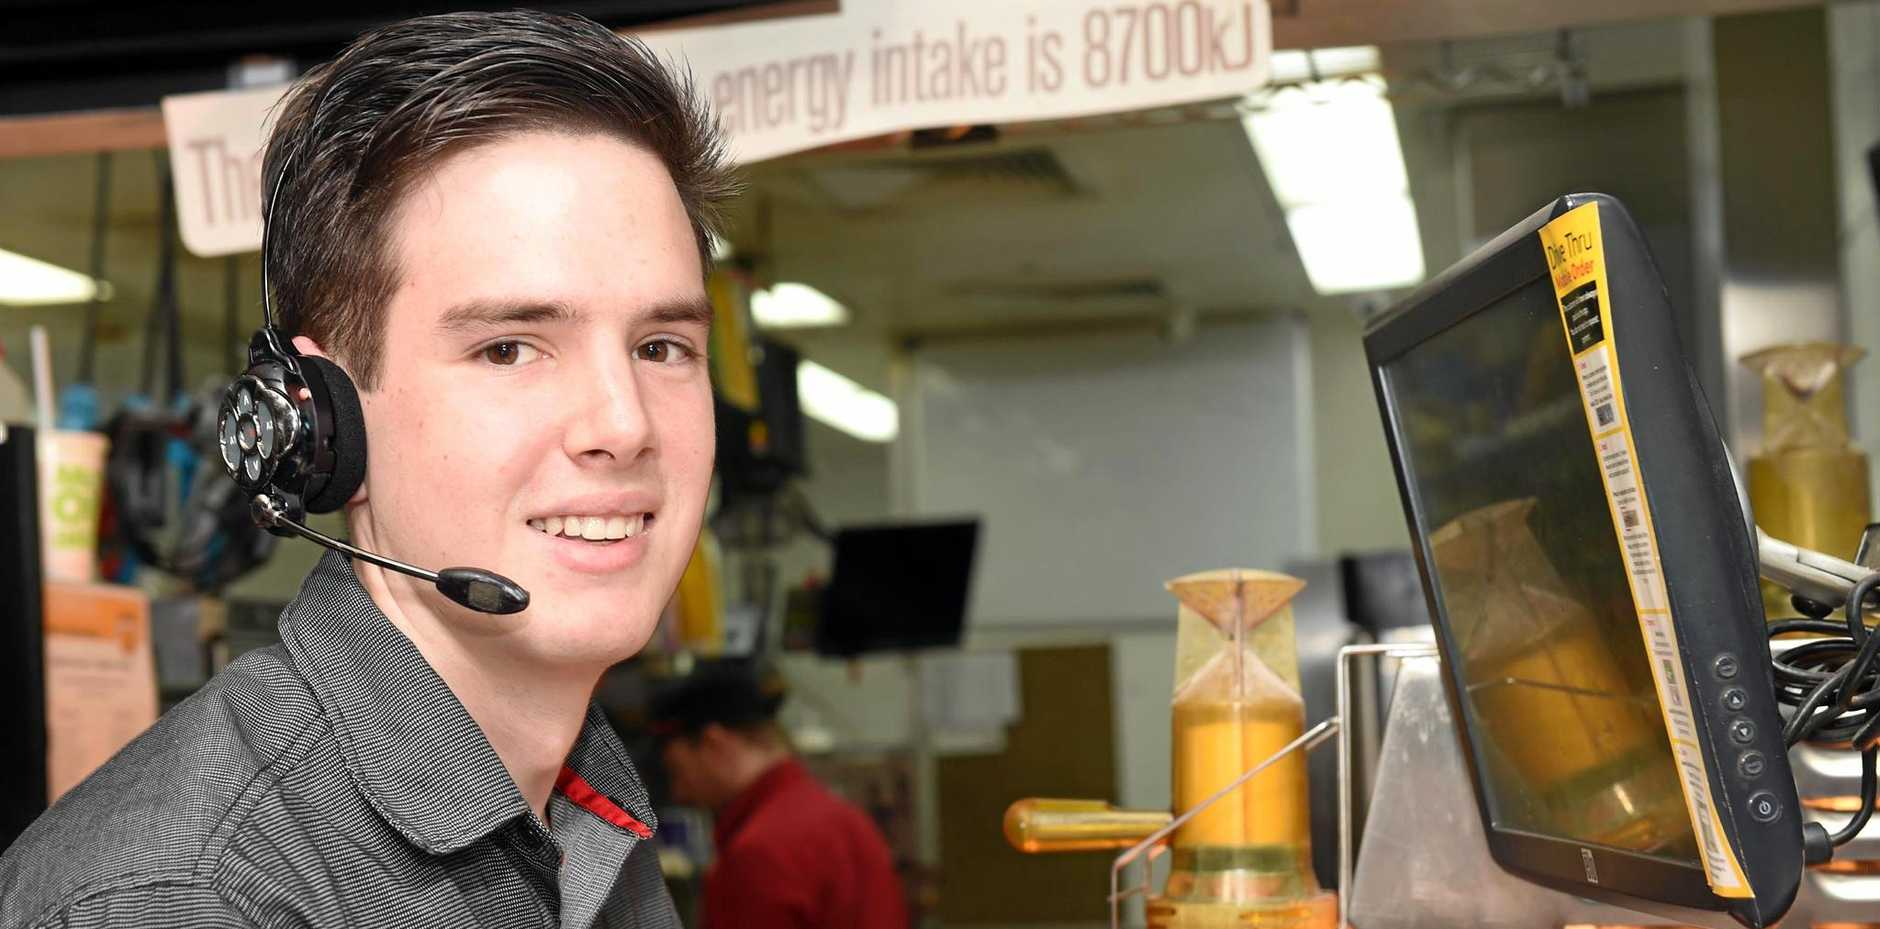 MOVING ON UP: Kyle Adams has been promoted to Shift Manager for Maryborough McDonald's.